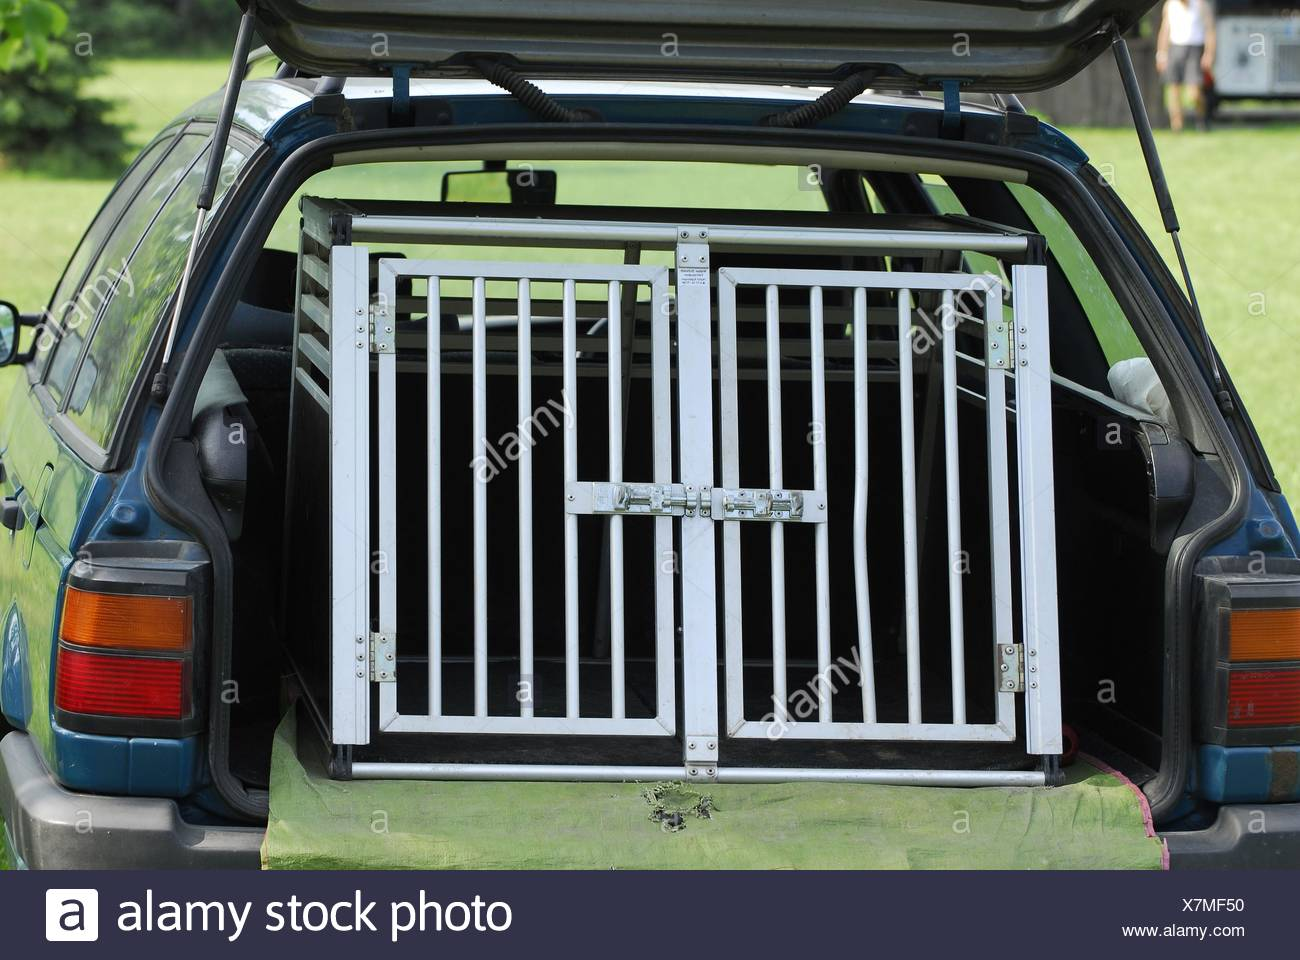 cage - Stock Image